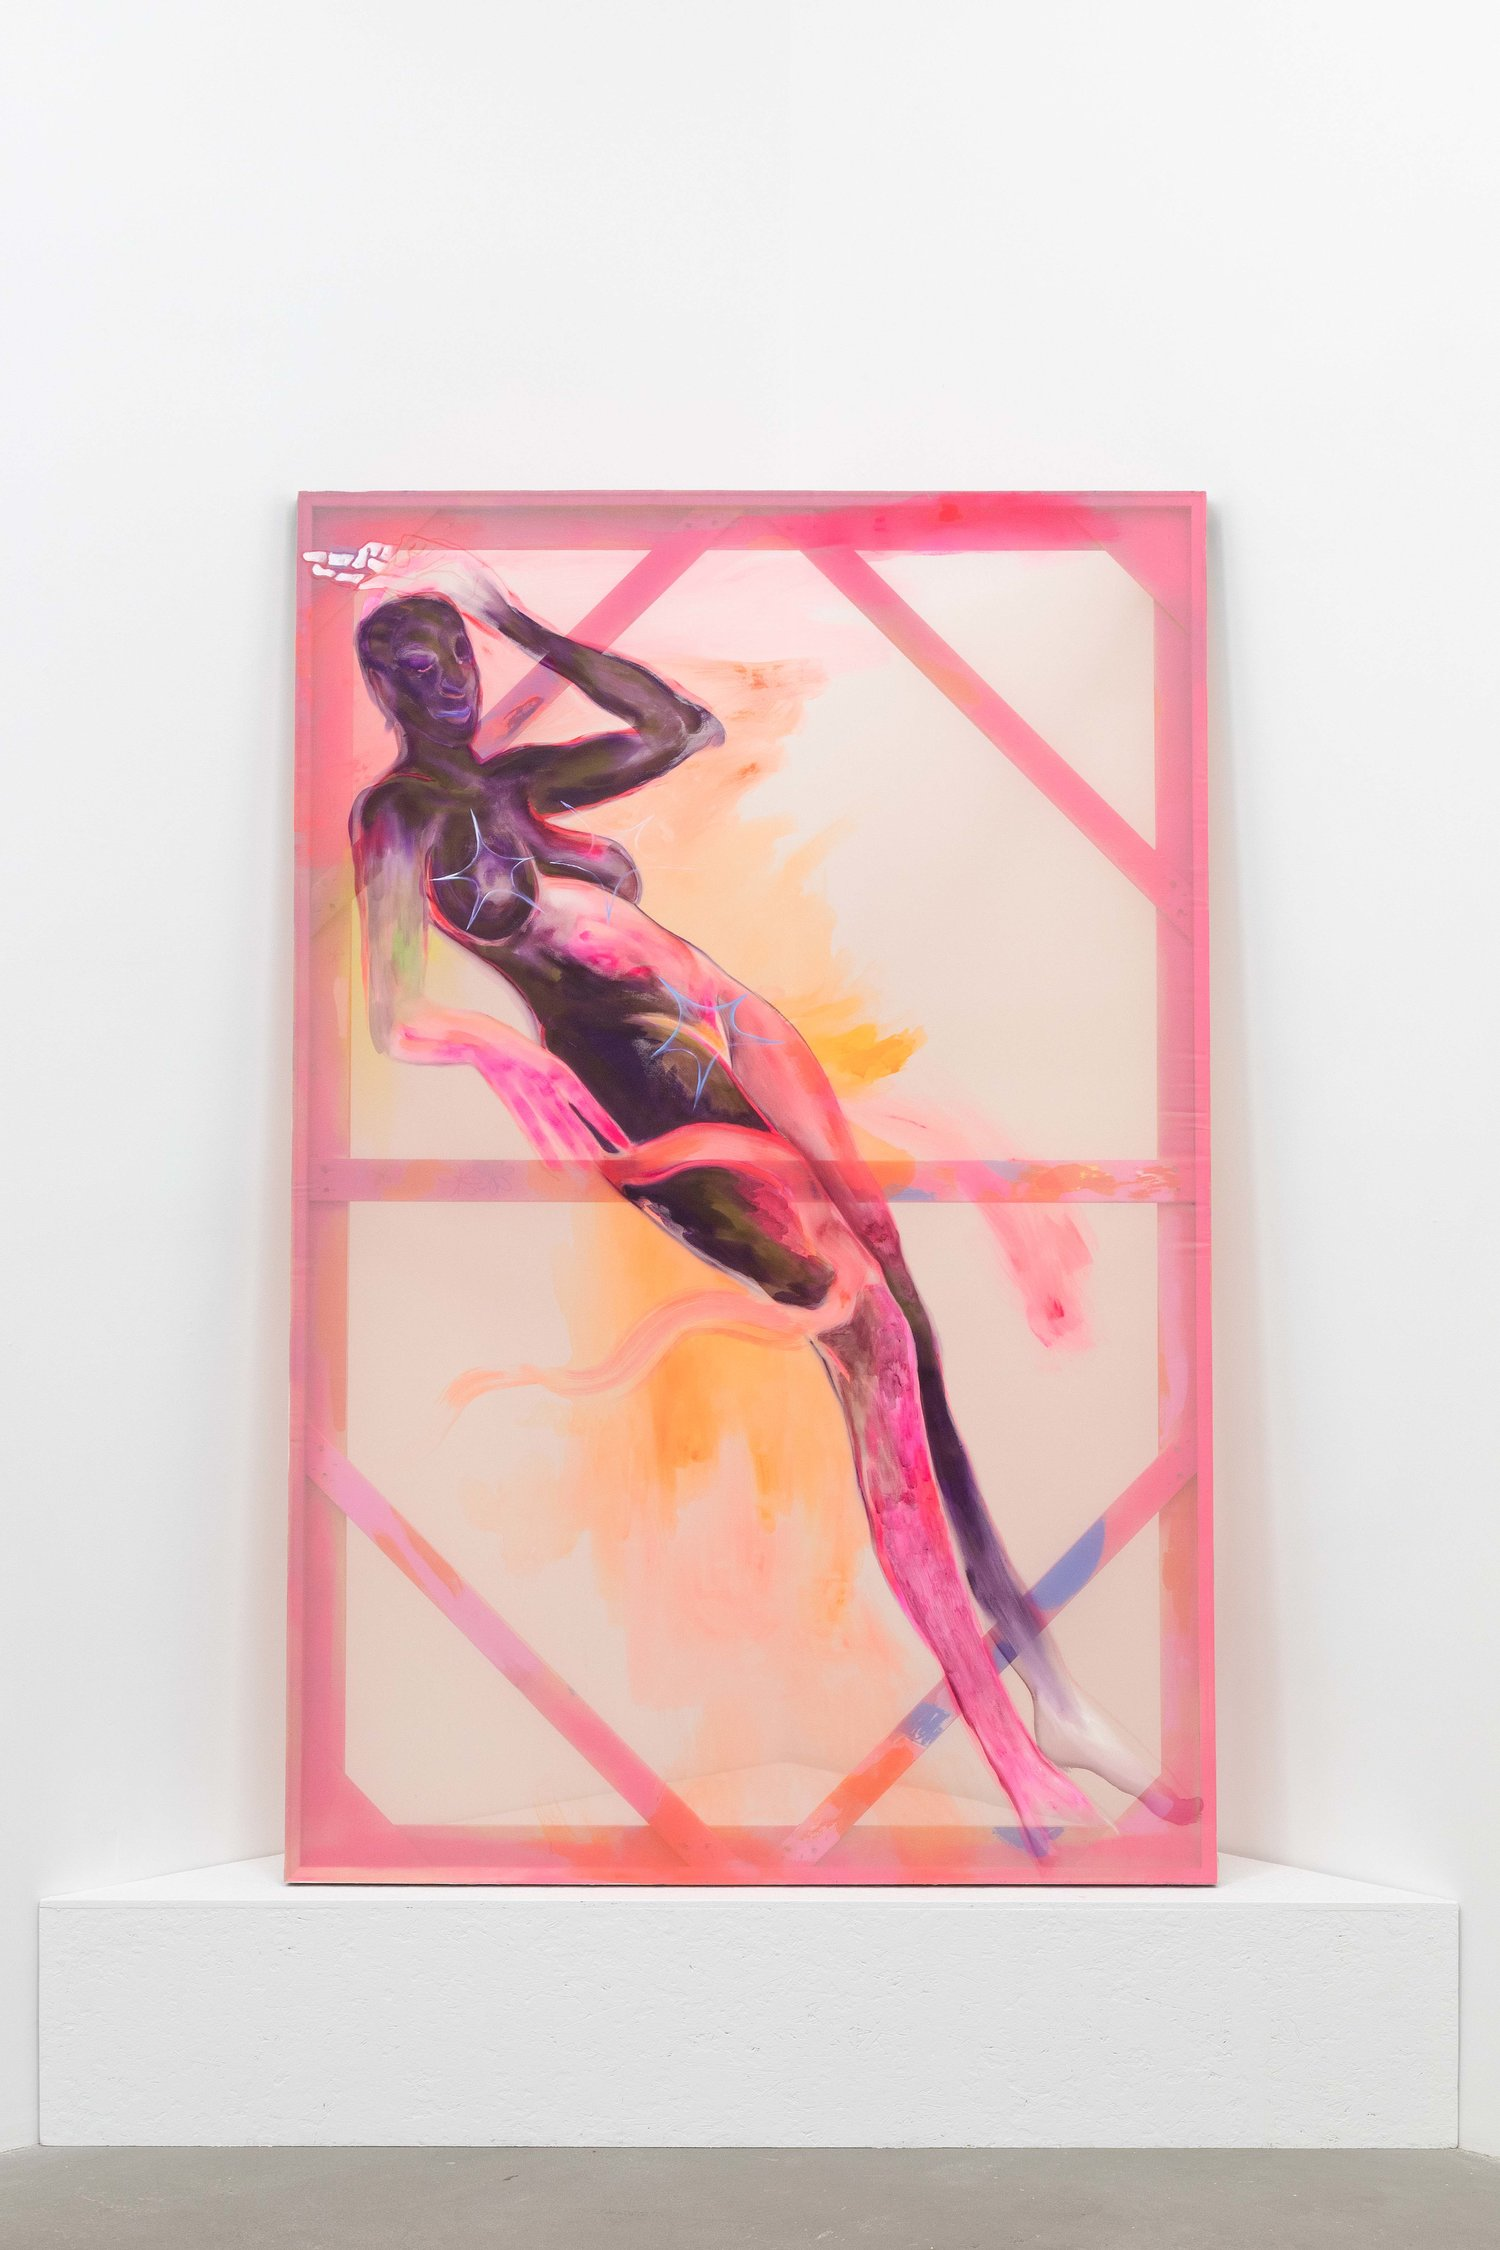 Curtia Wright, Held together by own gravity , 2019 Oil and acrylic on Organza fabric 72 x 48 in (182.9 x 121.9 cm)